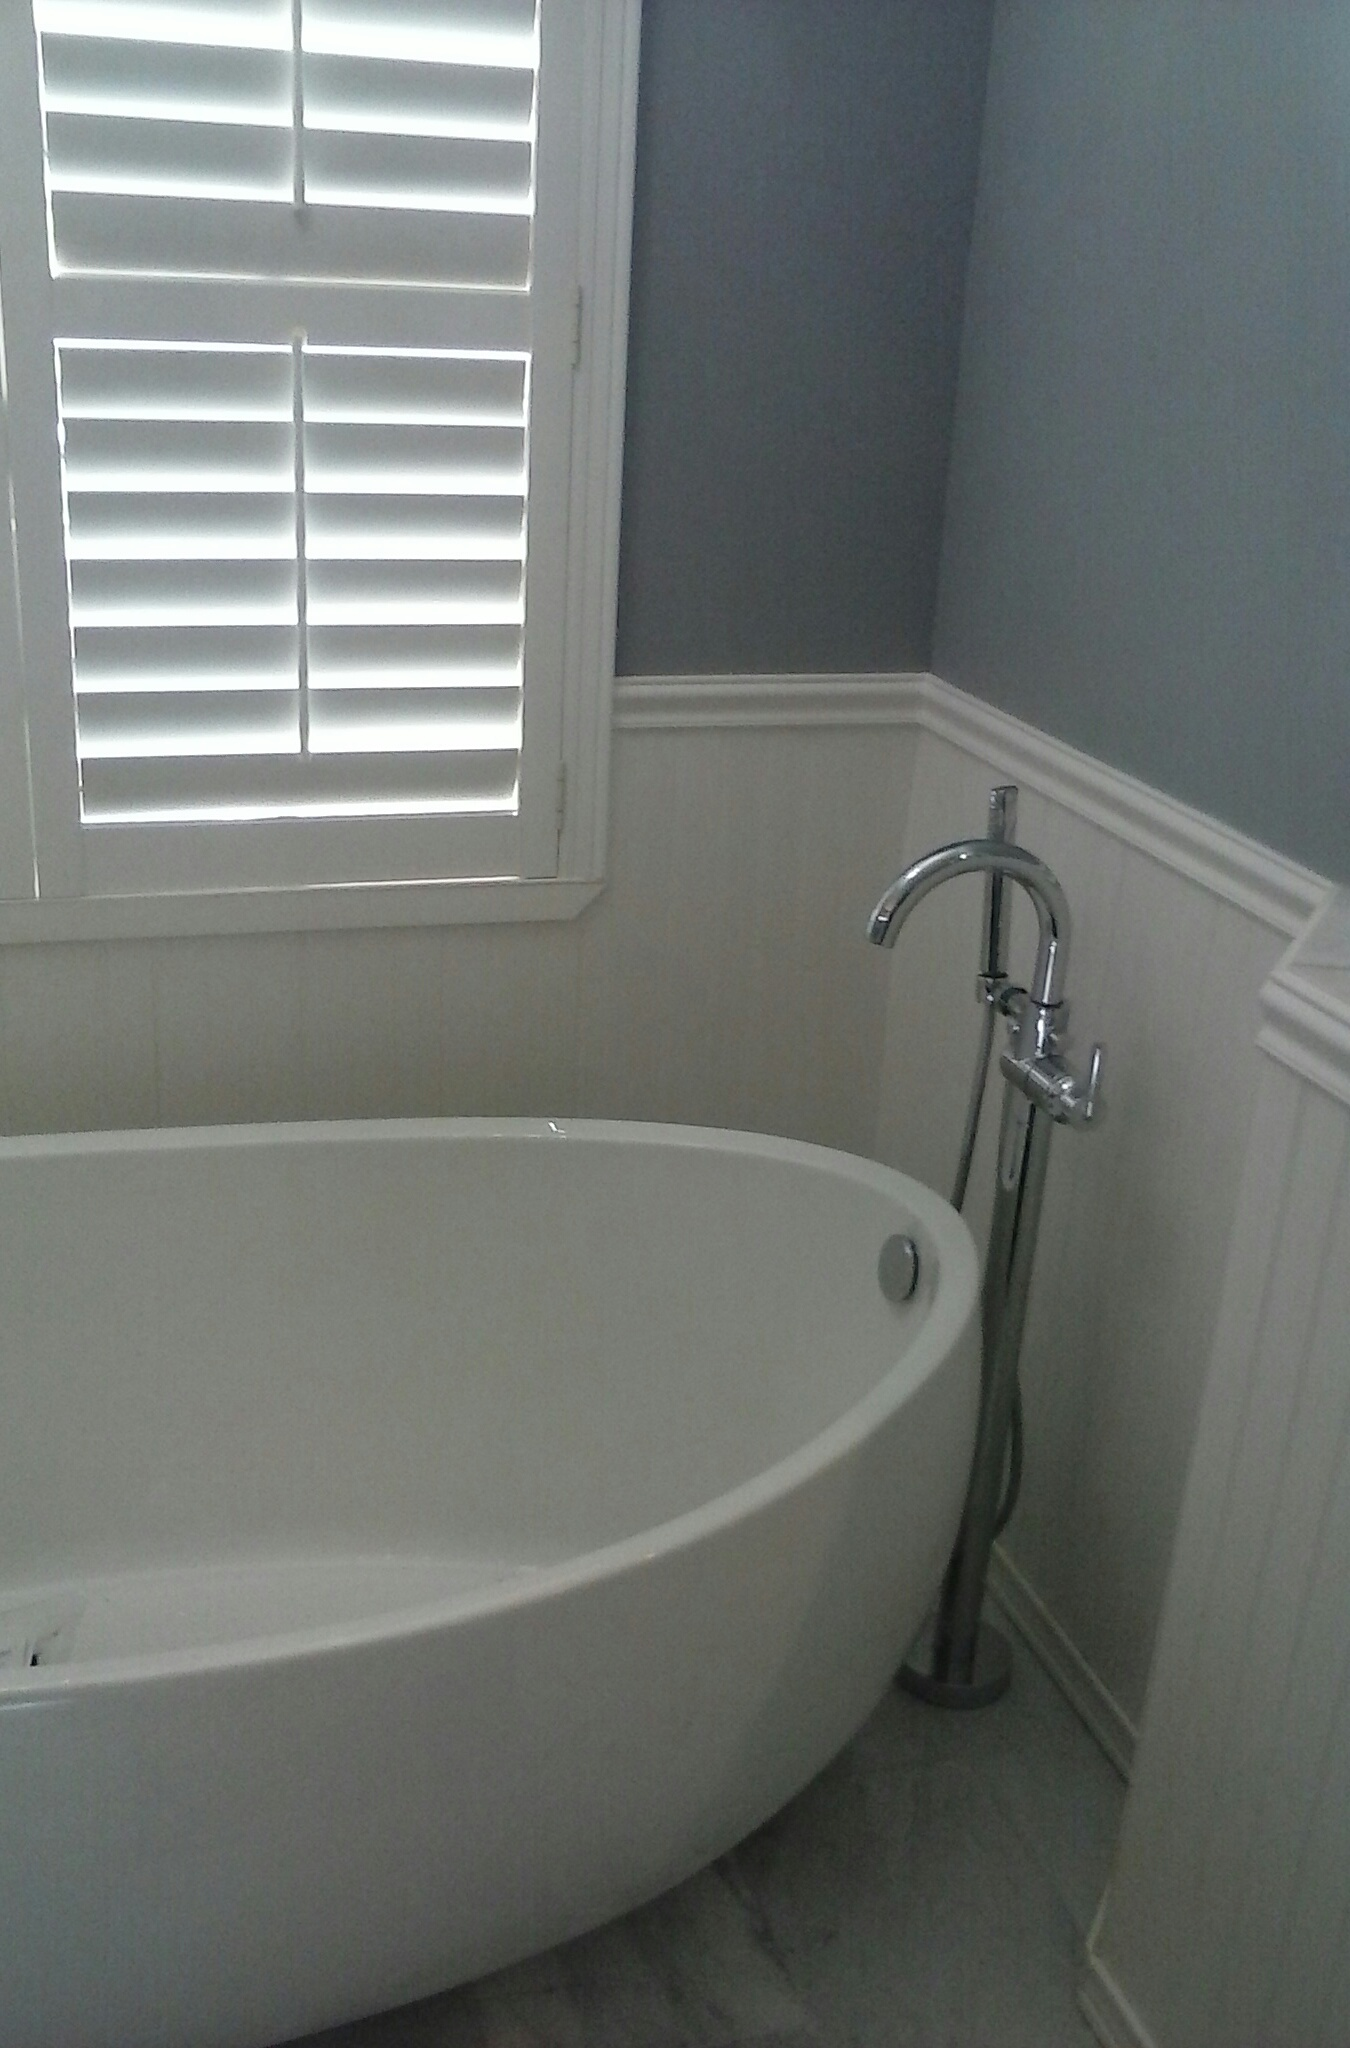 Bathroom Remodeling At Able Builders Inc In Clearwater Local - Bathroom remodeling pinellas county